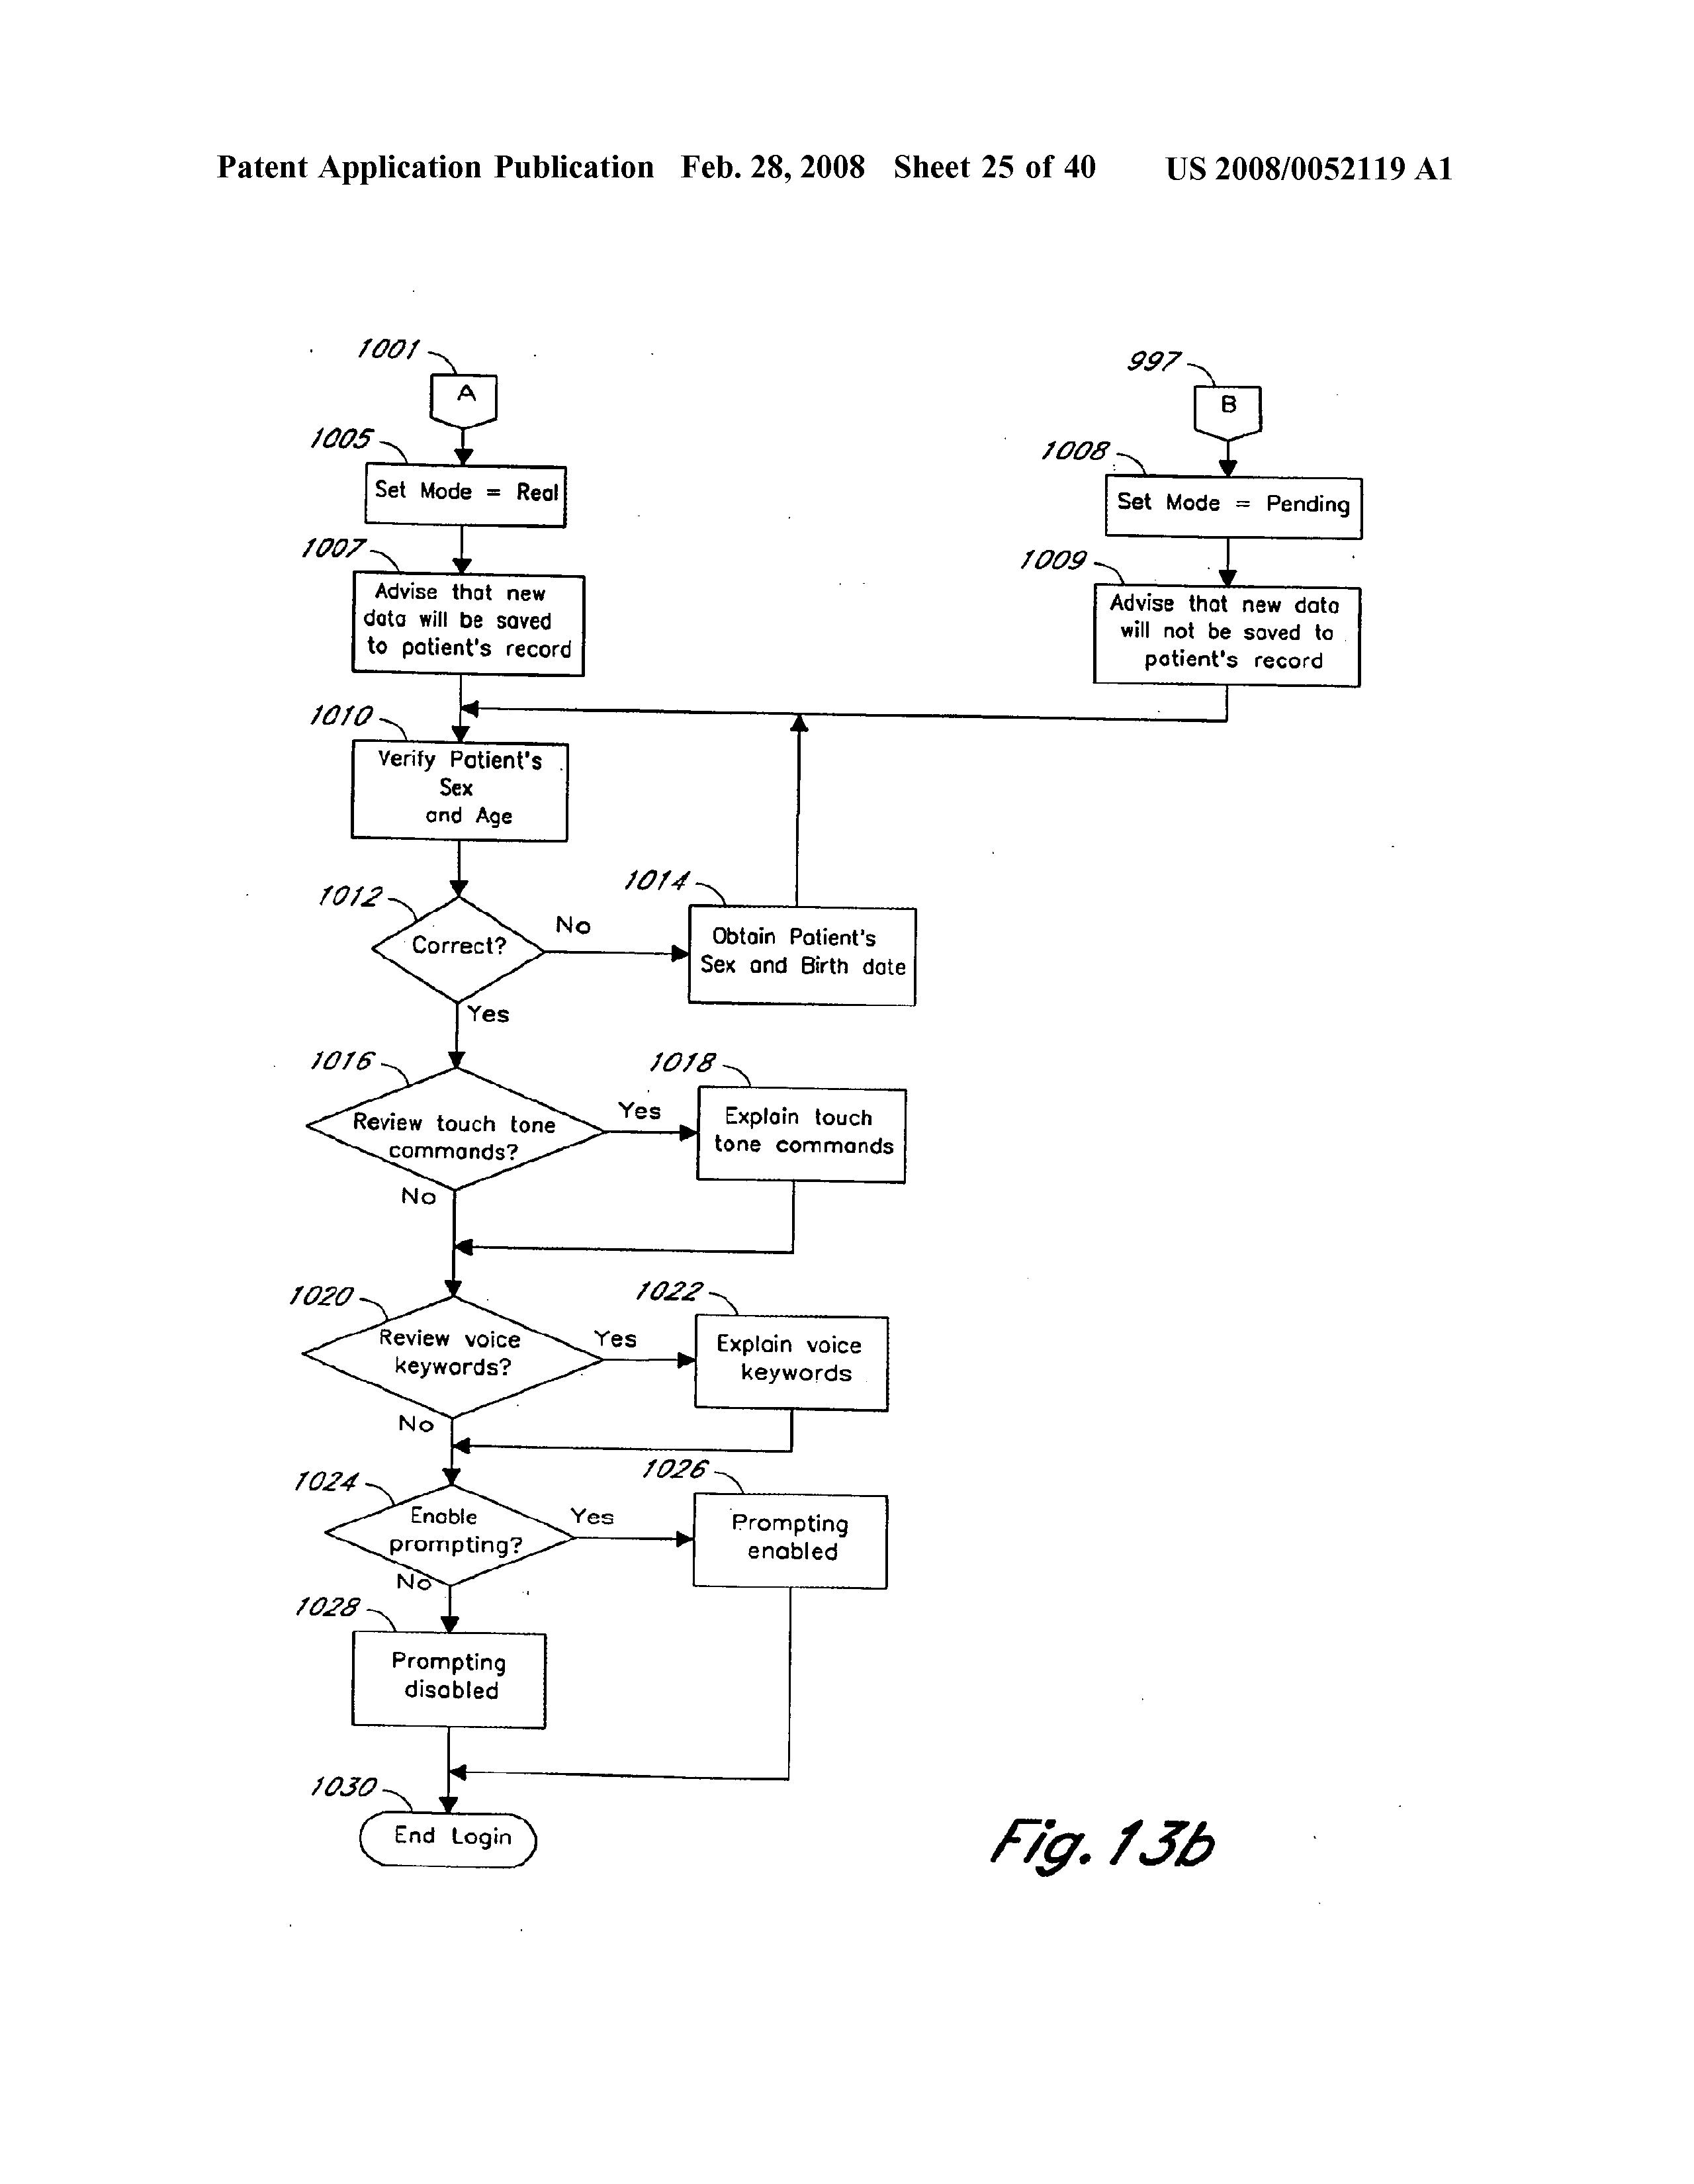 US 2008/0052119 A1 - Computerized Medical Diagnostic And